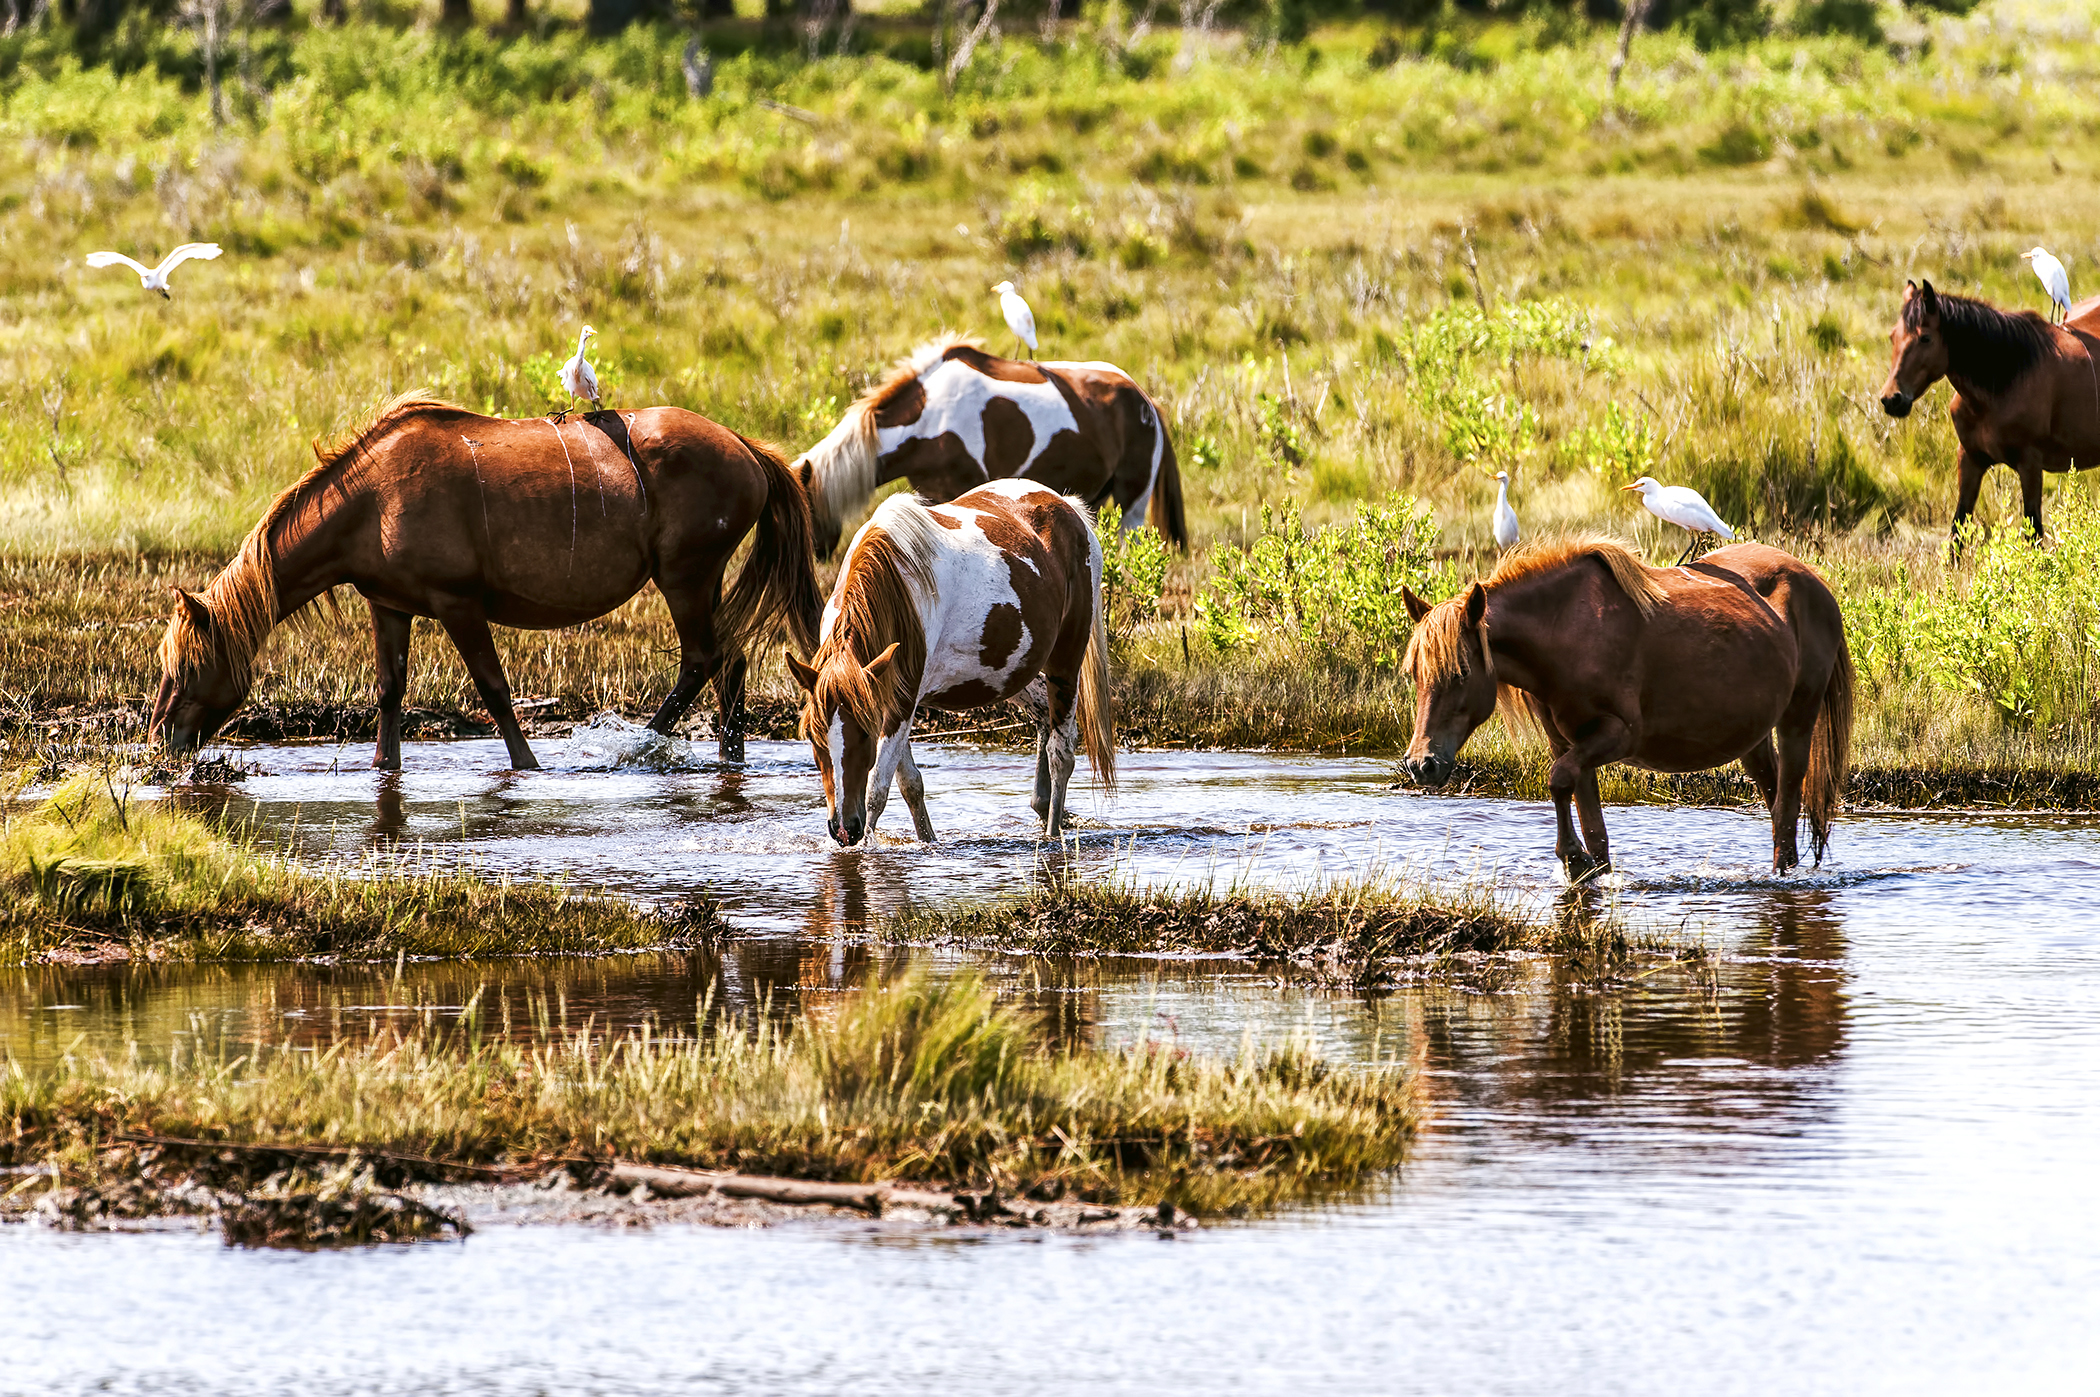 Several cattle egrets were riding these wild horses, Chincoteague Island, Virginia.